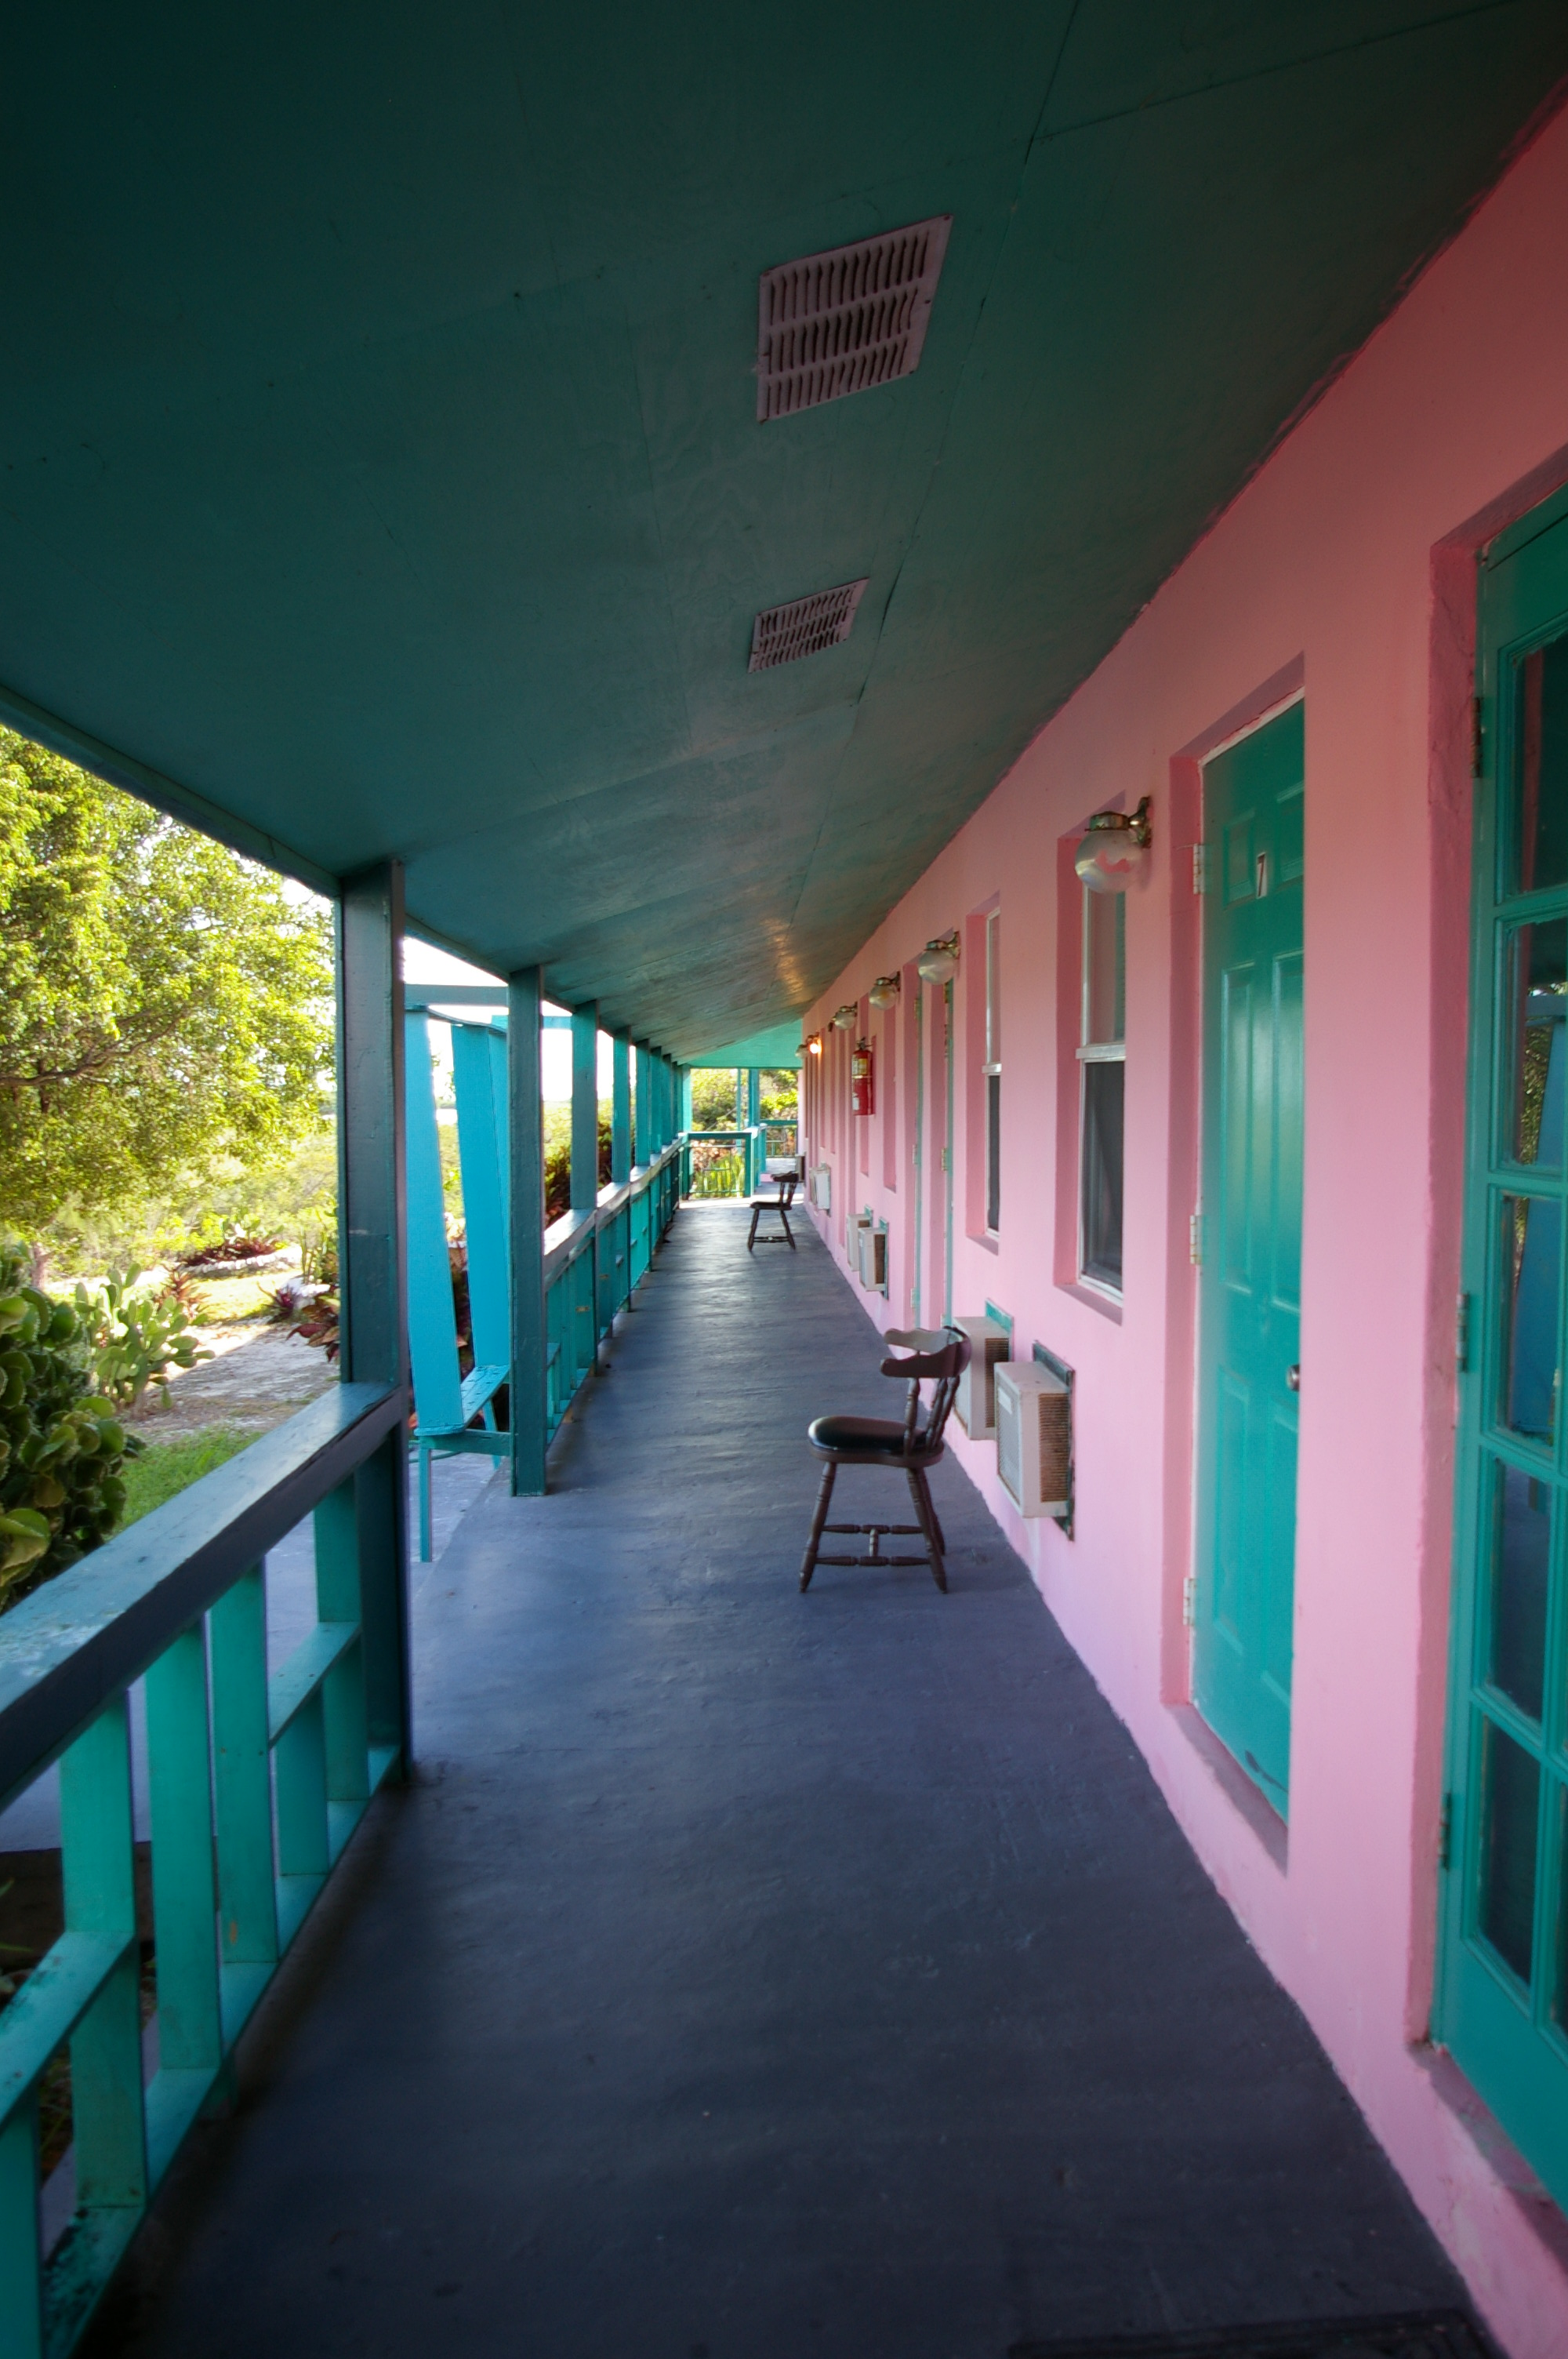 Destination: What a deal; Tranquility Hill Lodge, North Andros, Bahamas!